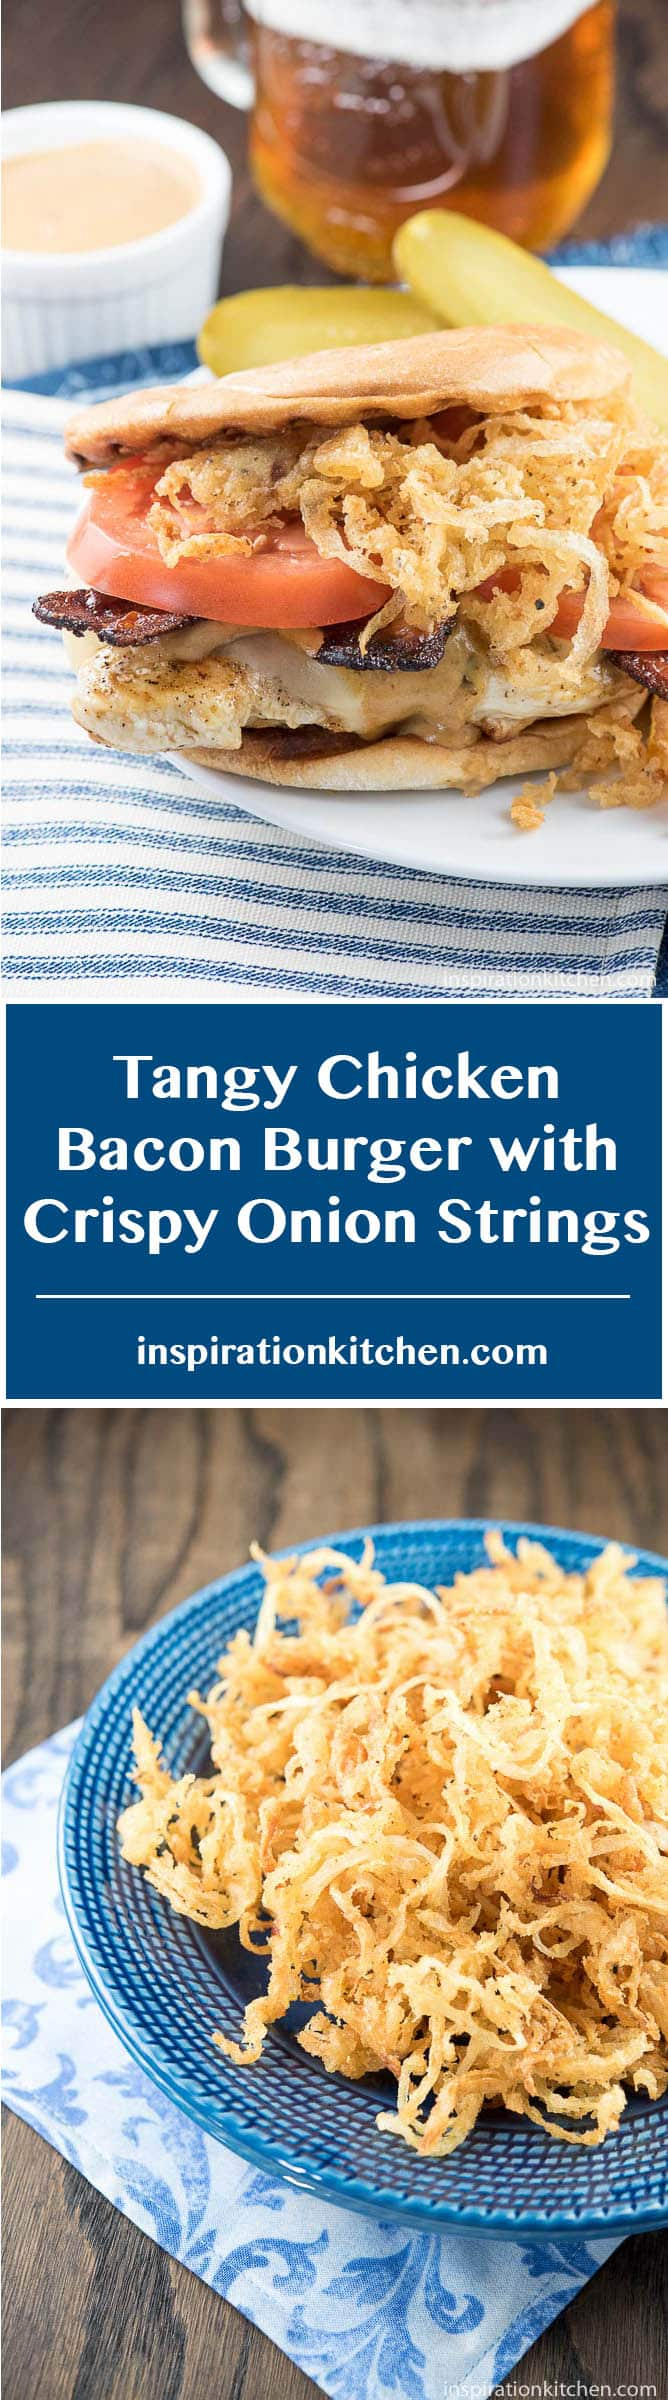 Tangy Chicken Bacon Burger with Crispy Onion Strings - inspirationkitchen.com